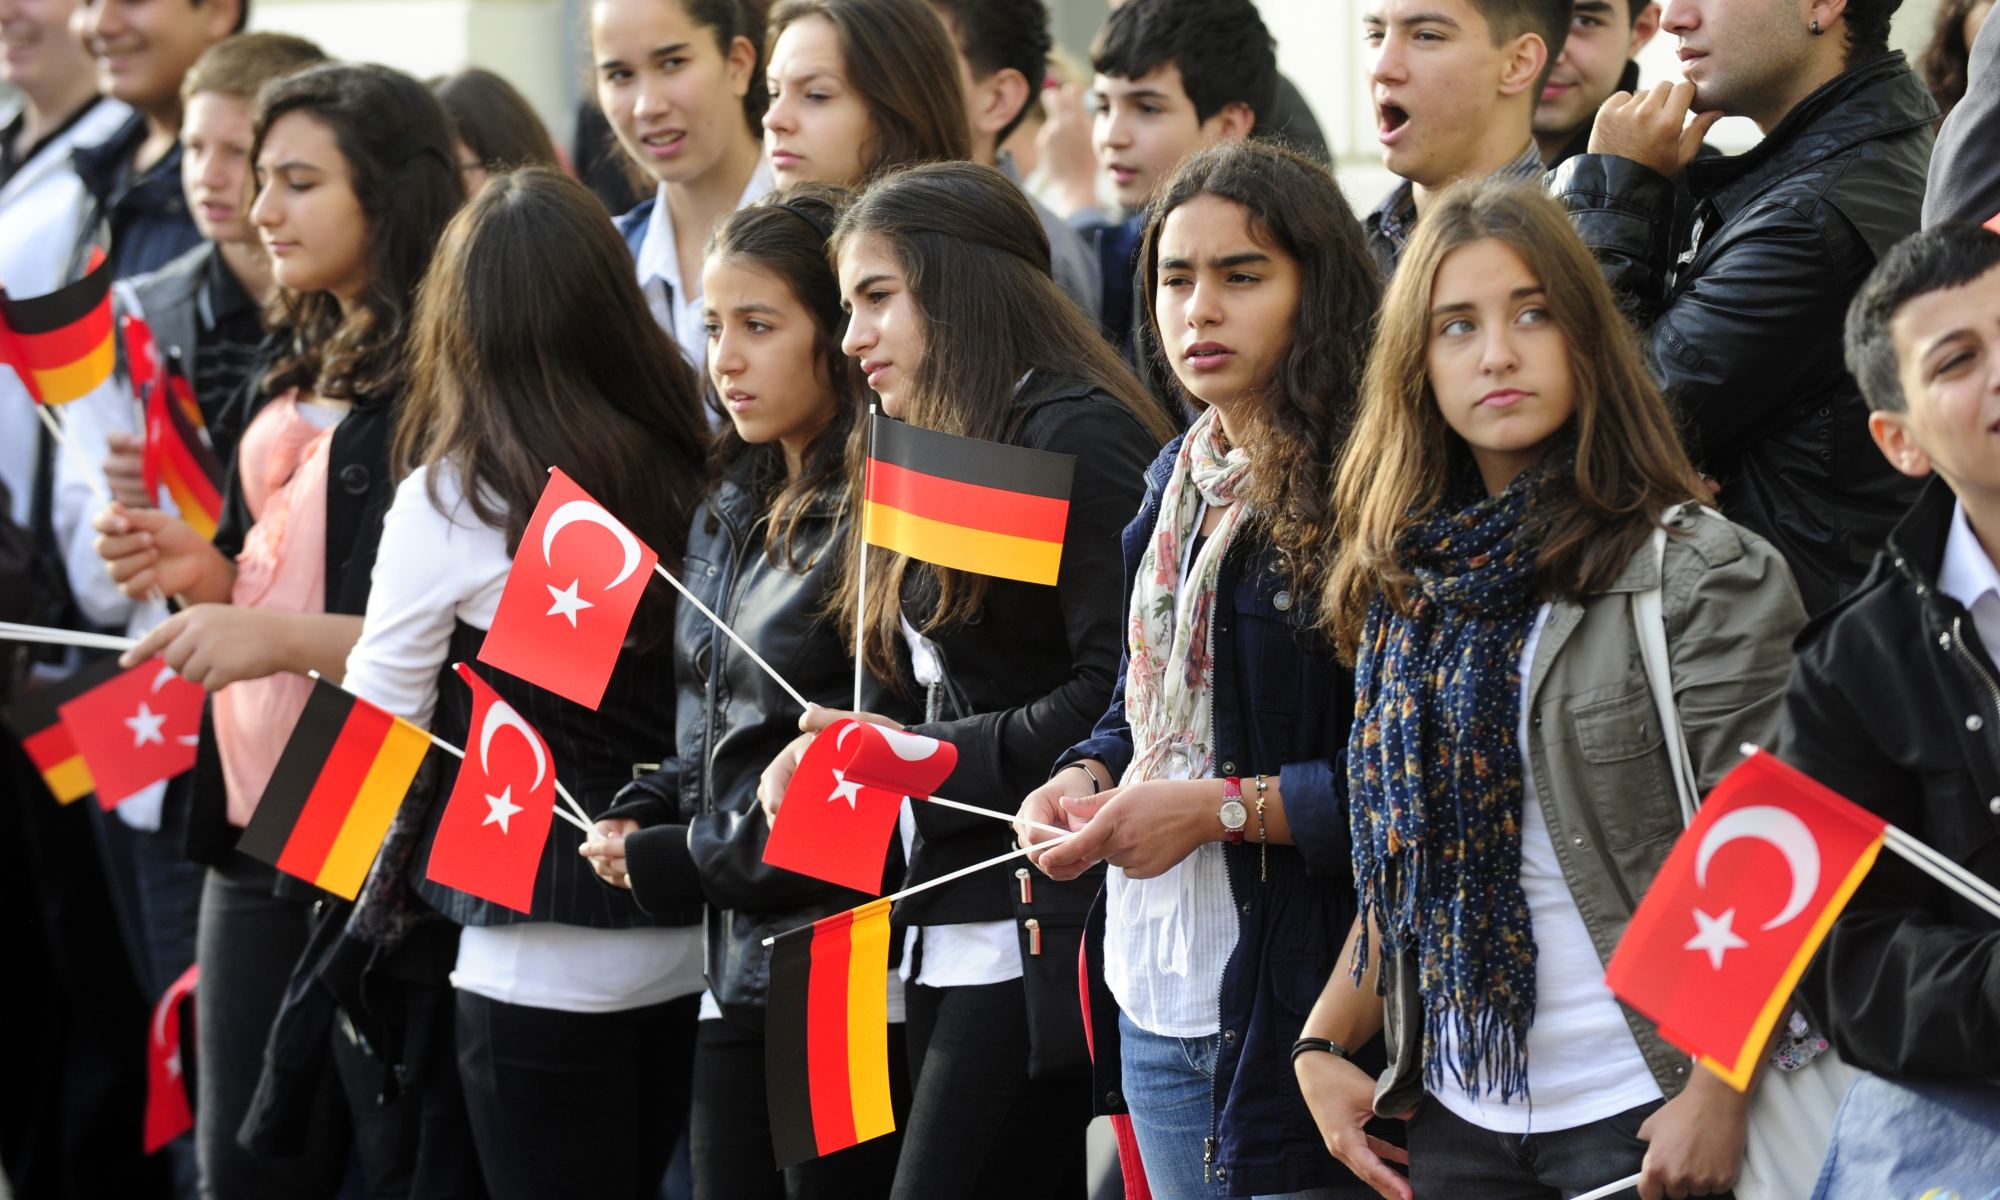 Turkish immigrants in Germany.